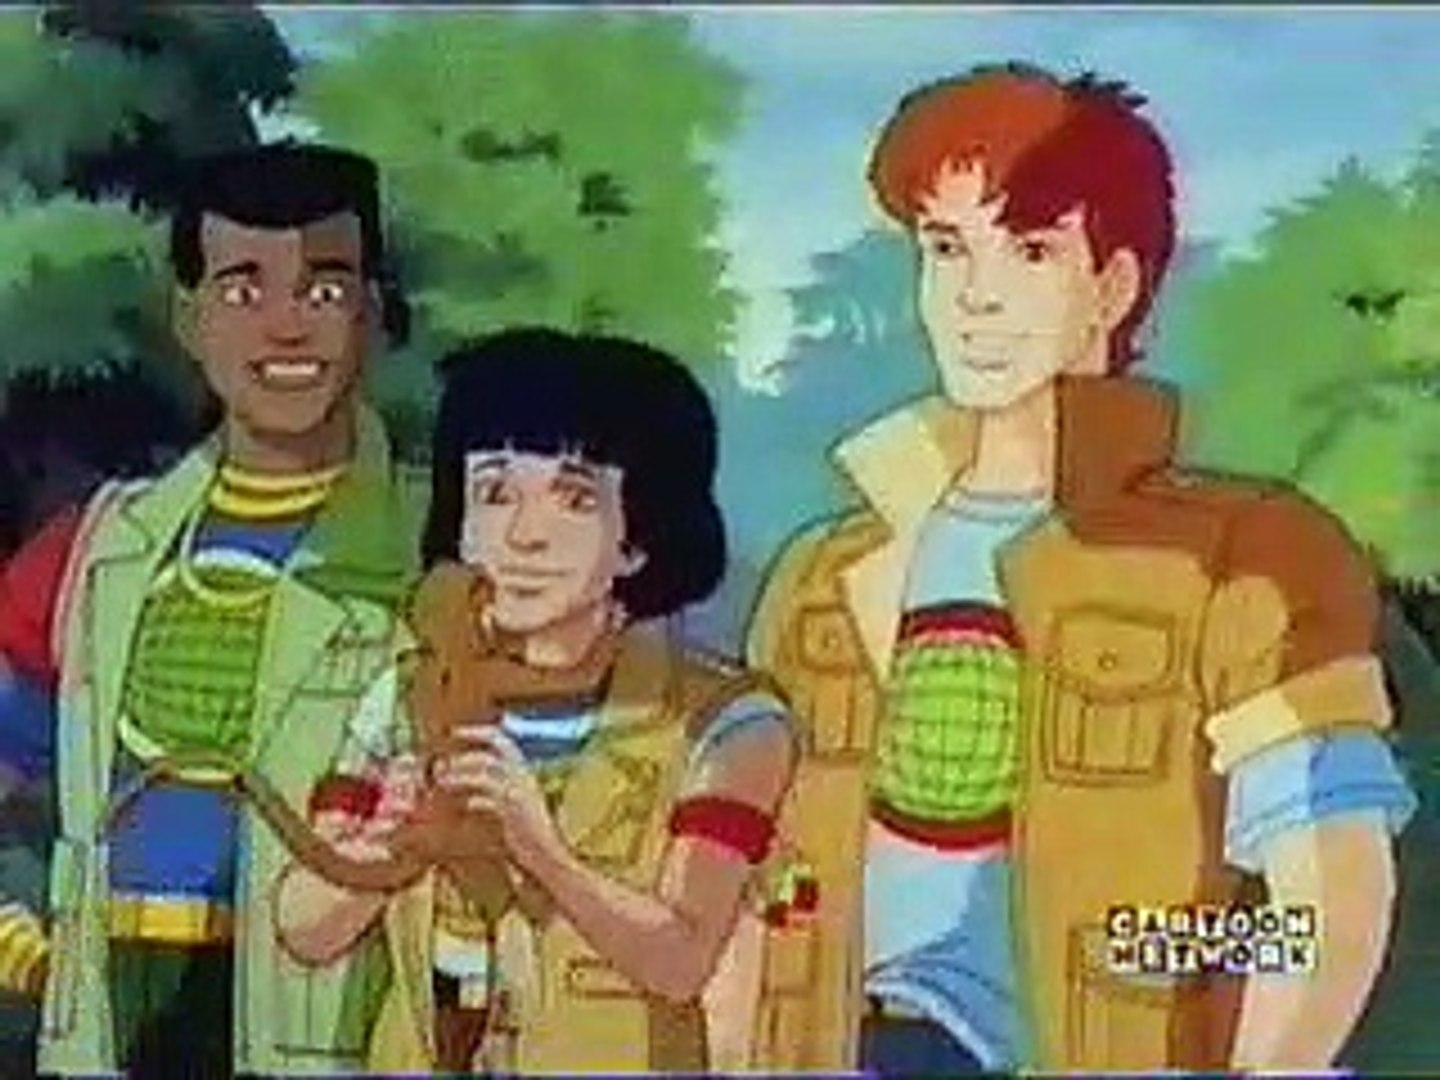 Captain Planet And The Planeteers S02E17 Summit To Save Earth (1)